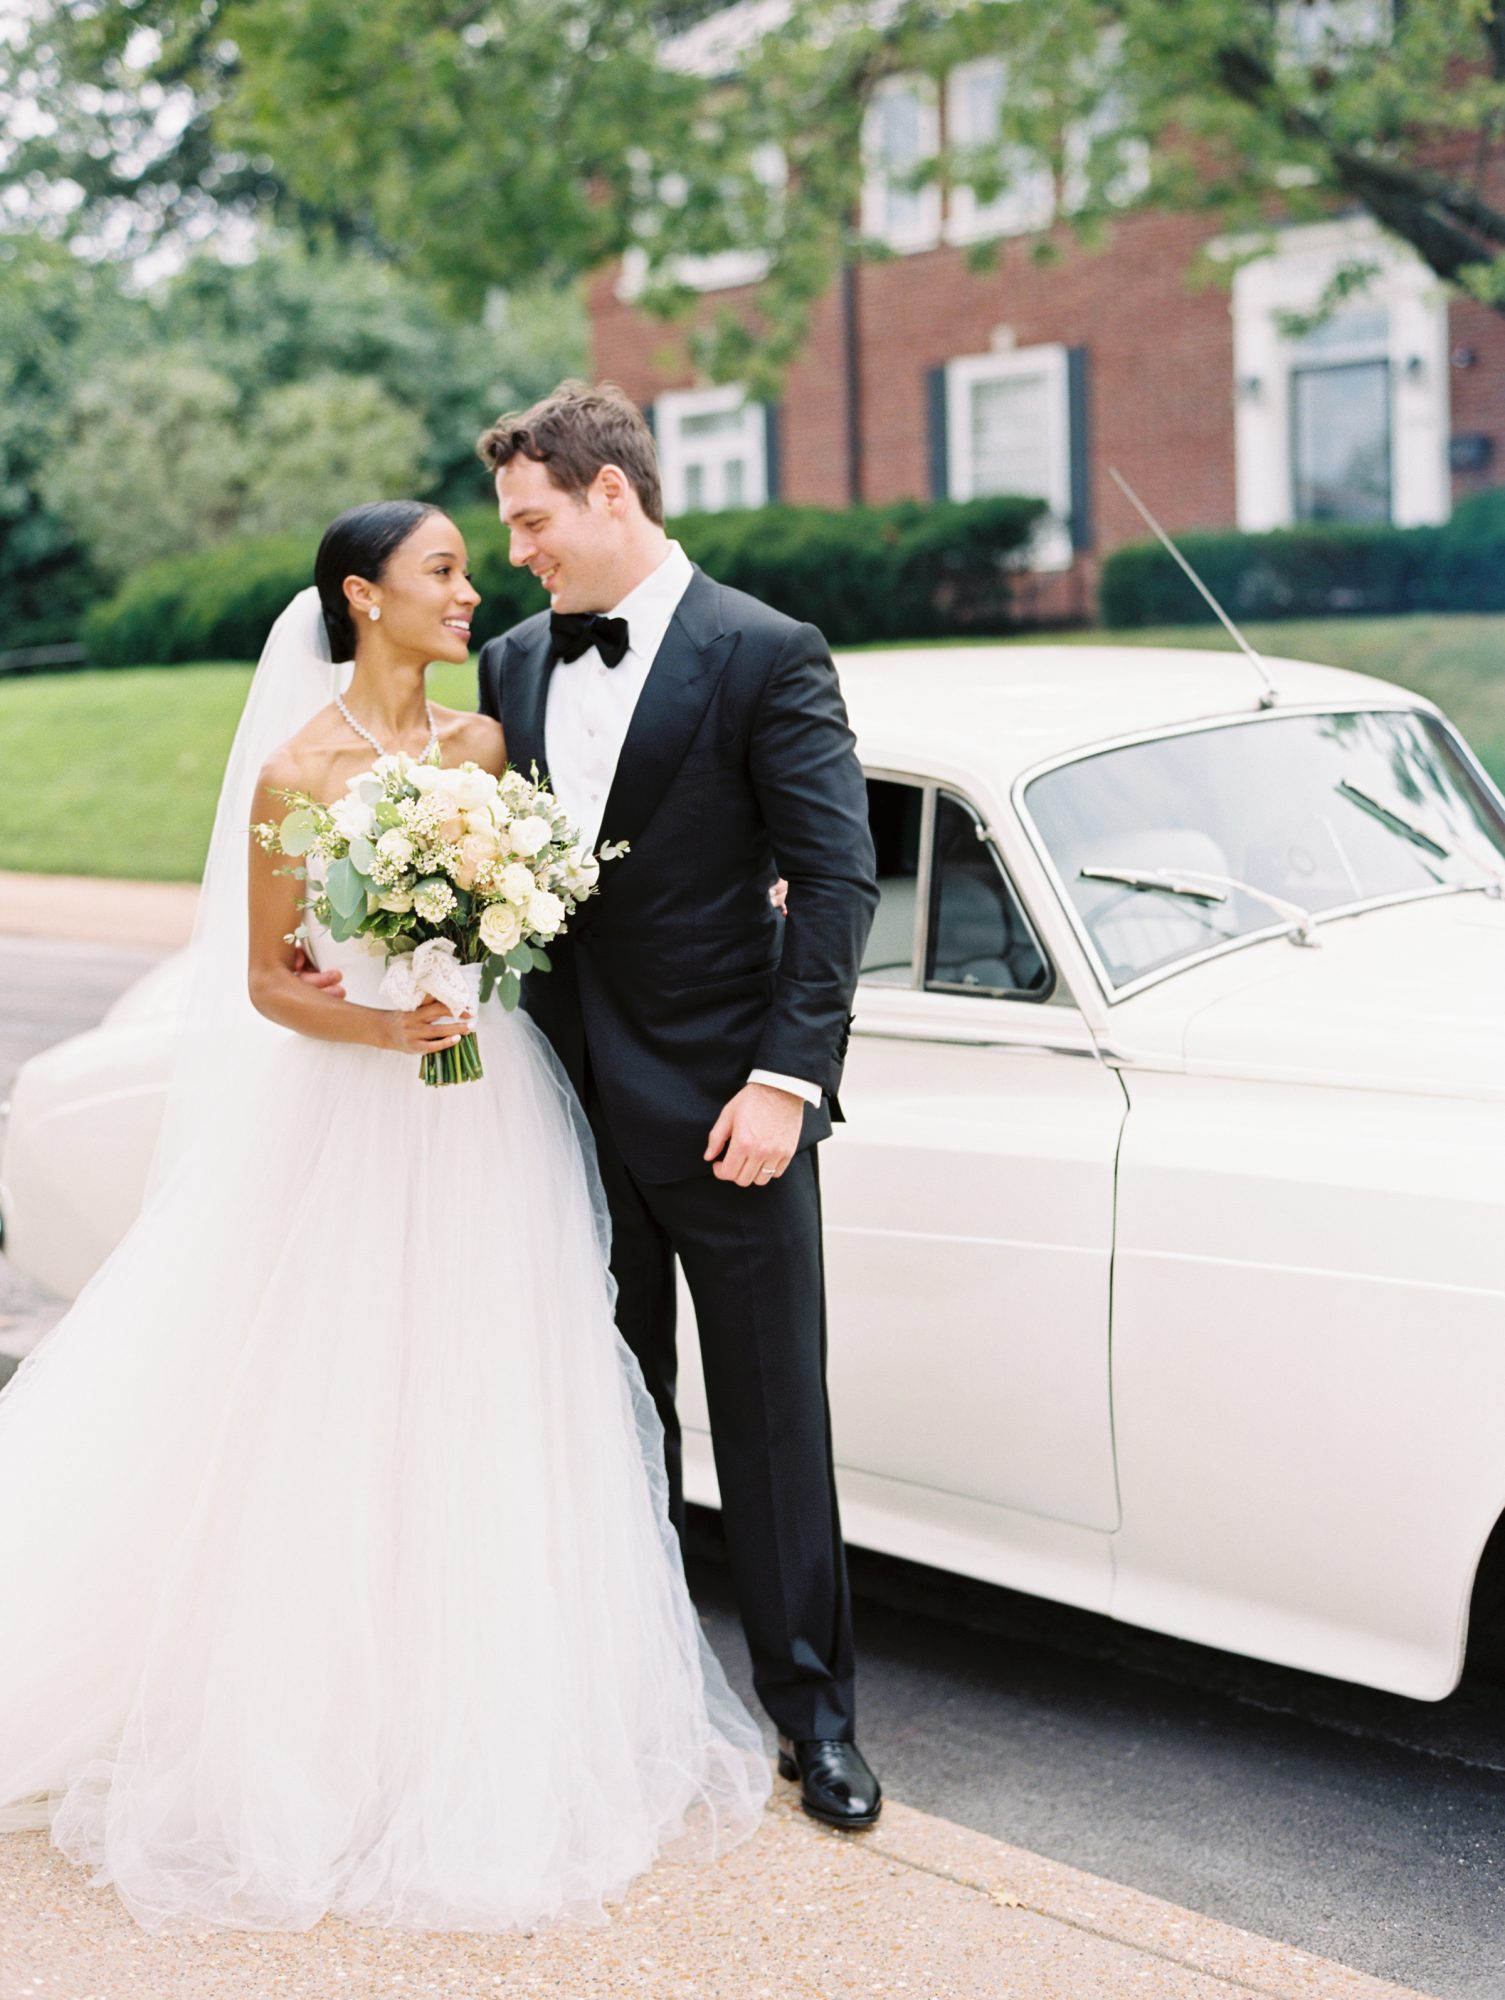 erinn andrew wedding couple pose by vintage car